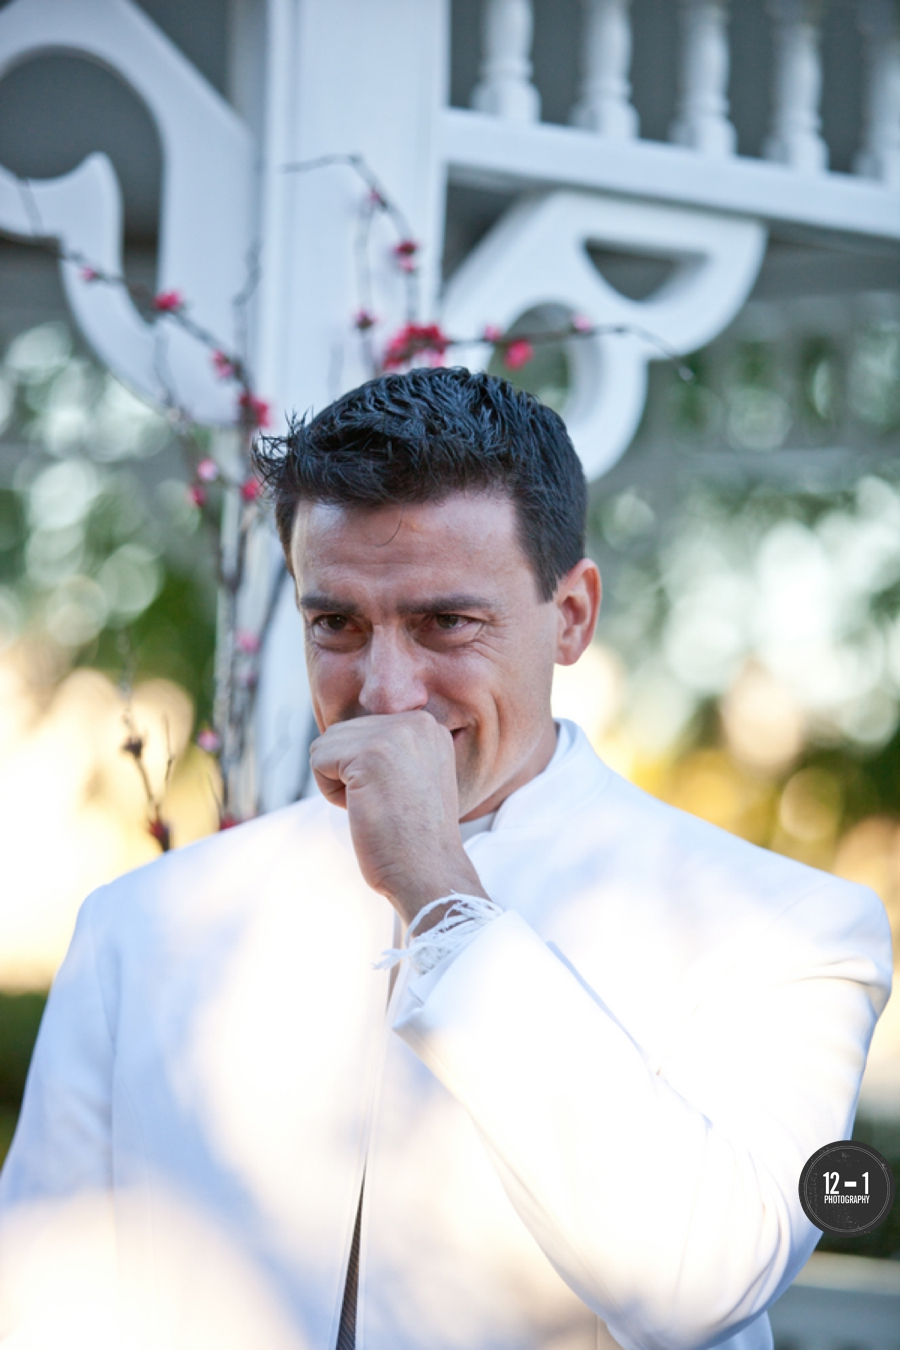 One of our favorite moments, when the groom saw his bride for the first time and teared up!